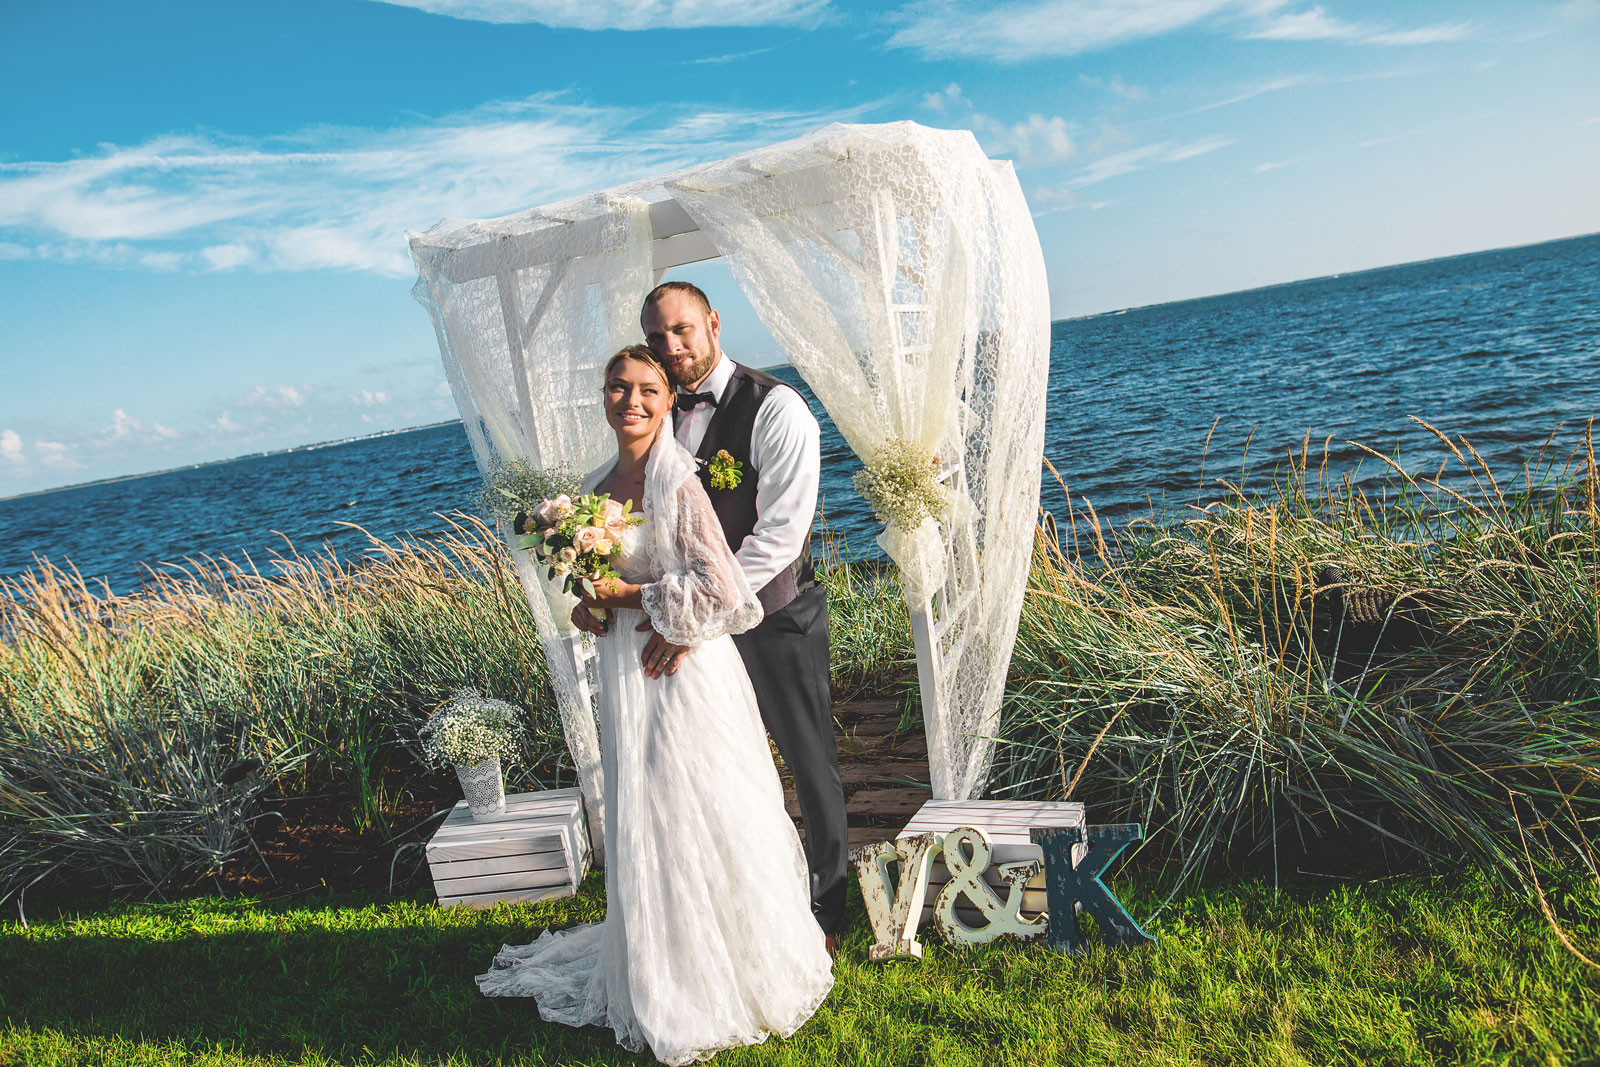 How to find a wedding photographer in Dominican Republic?